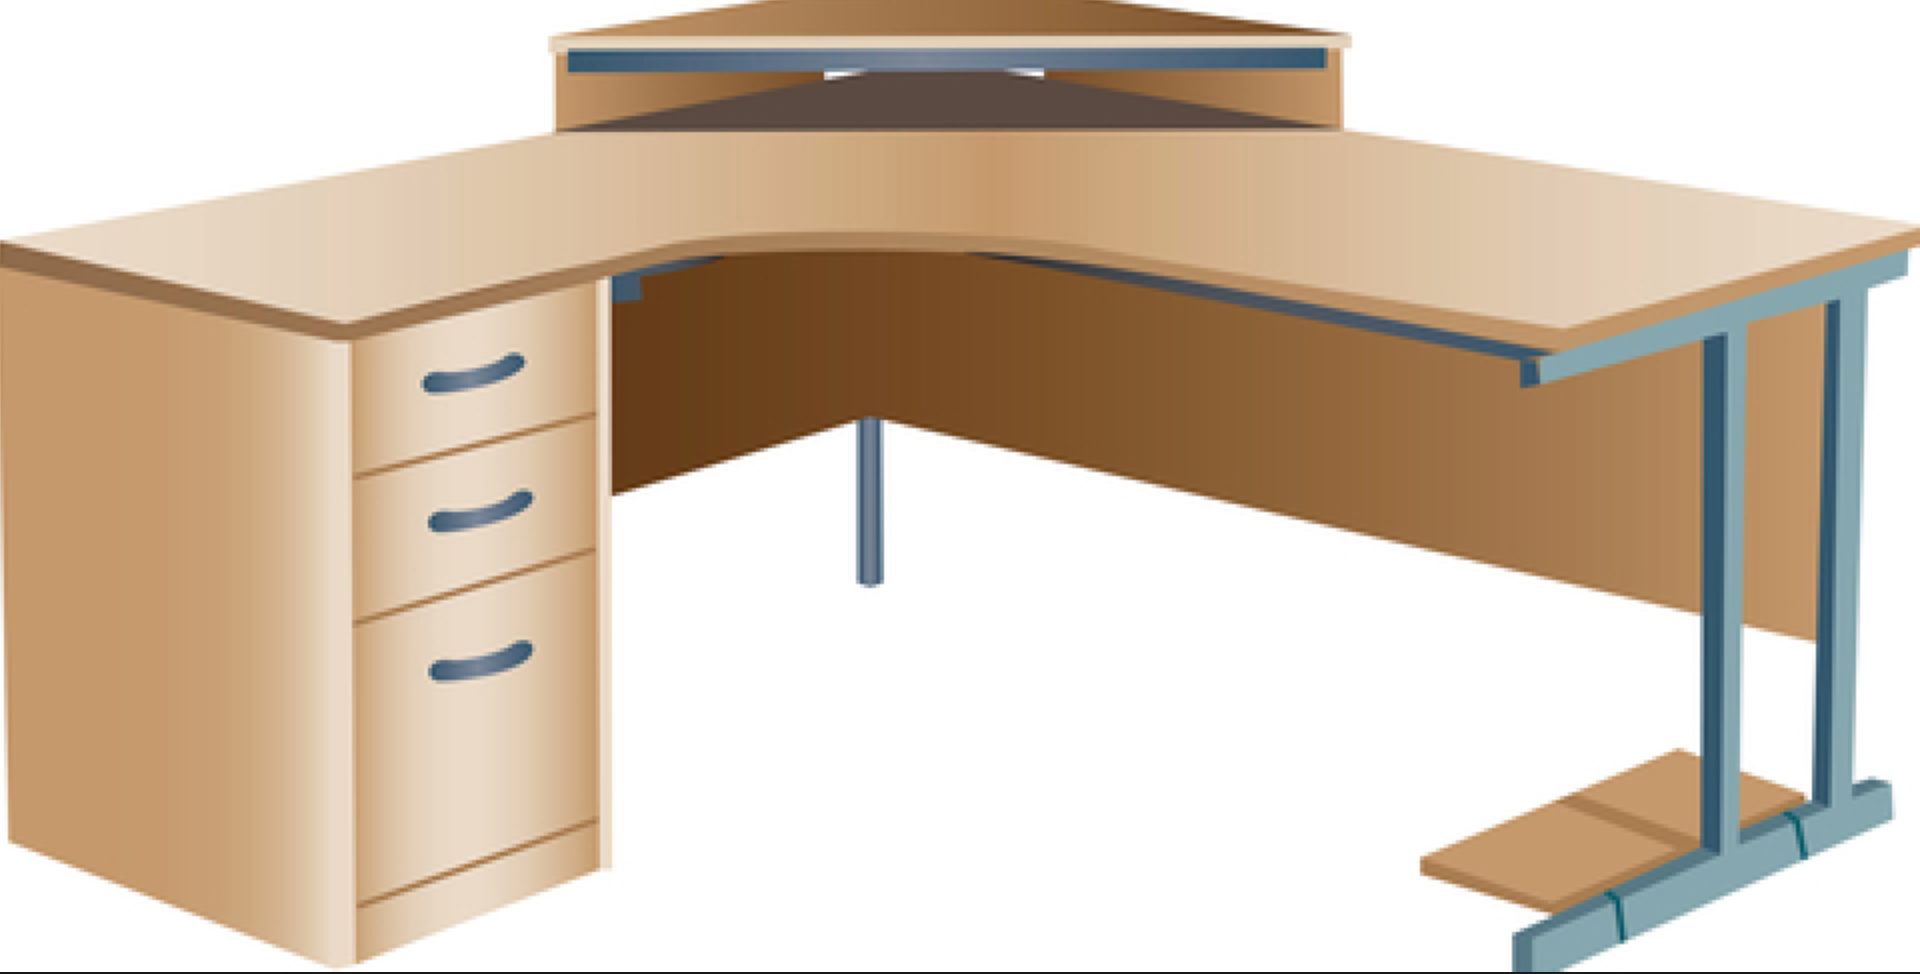 L Shaped Desks Don T Pose A Big Feng Shui Problem Although They Are Not Ideal The Important Thing Is To Ensure Tha L Shaped Desk Feng Shui Interior Decorating